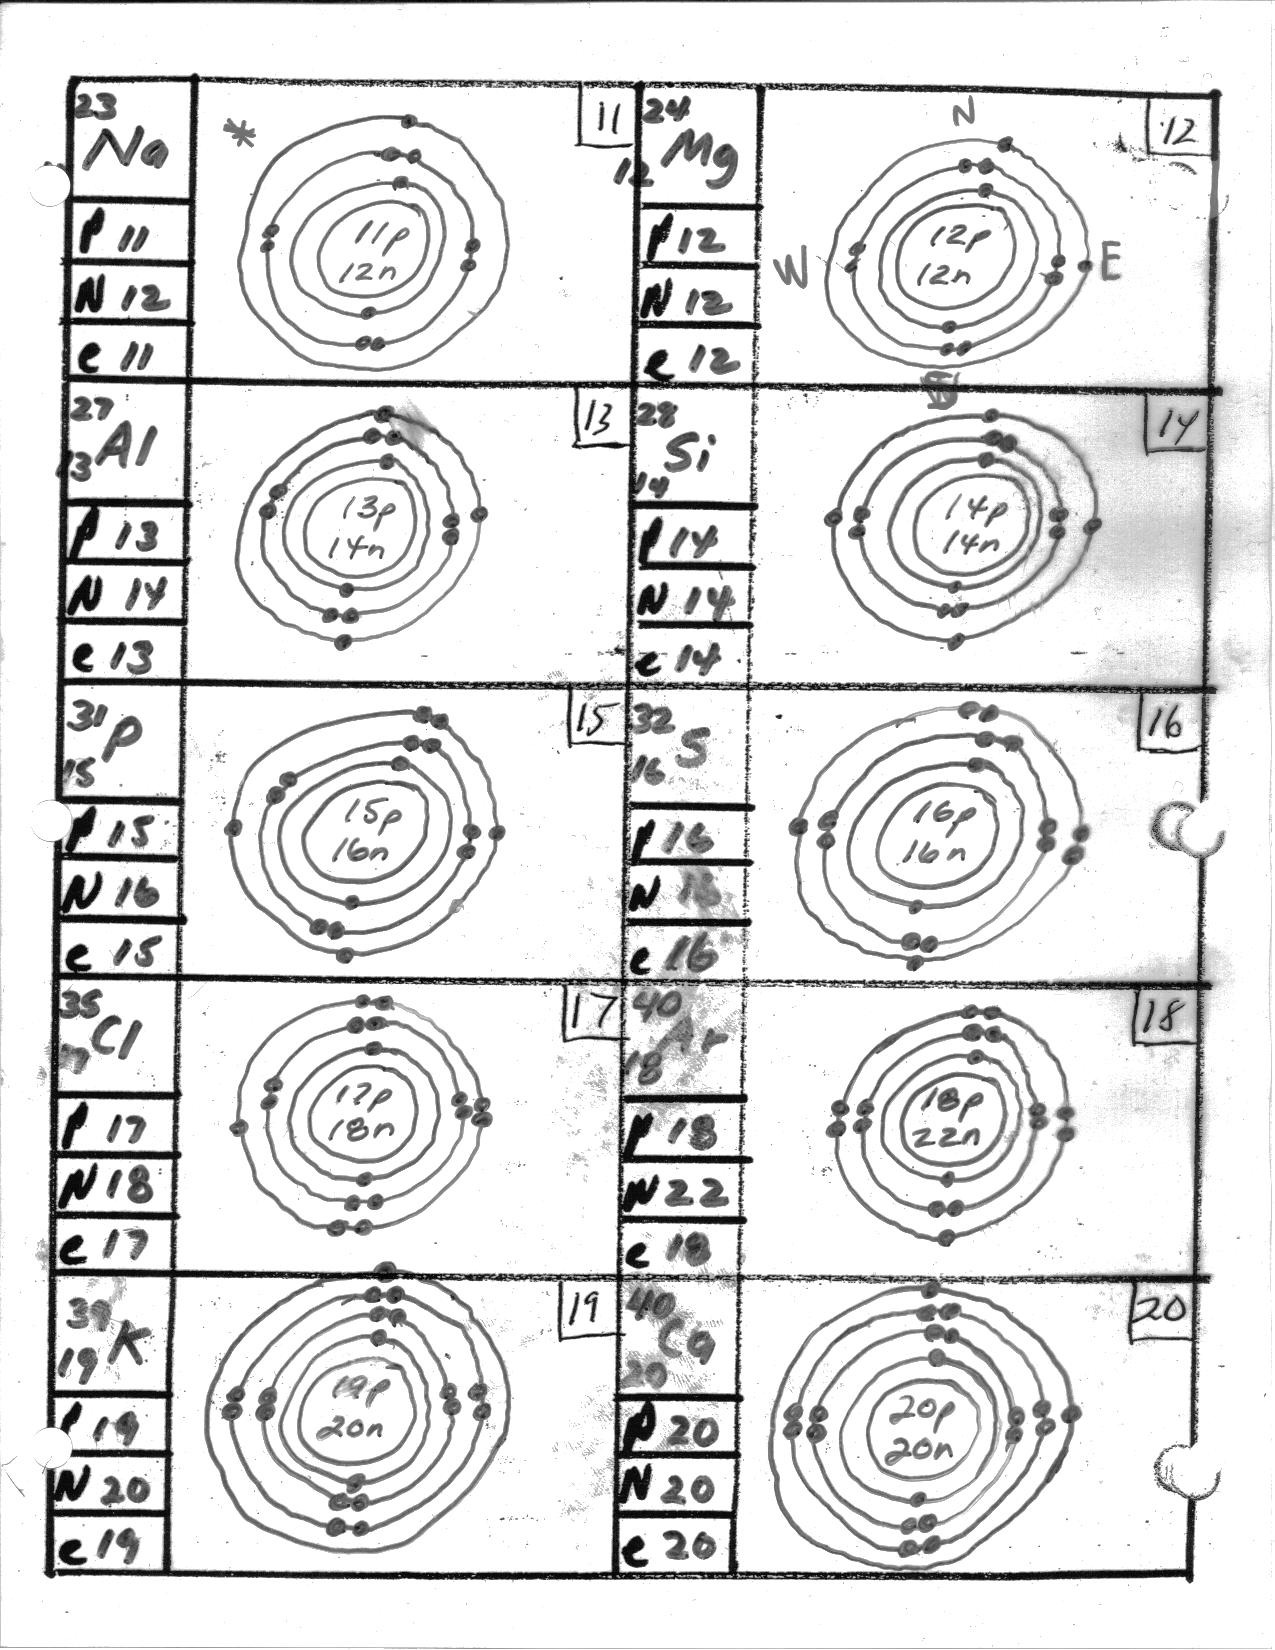 Bohr Rutherford Diagram For The First 20 Elements